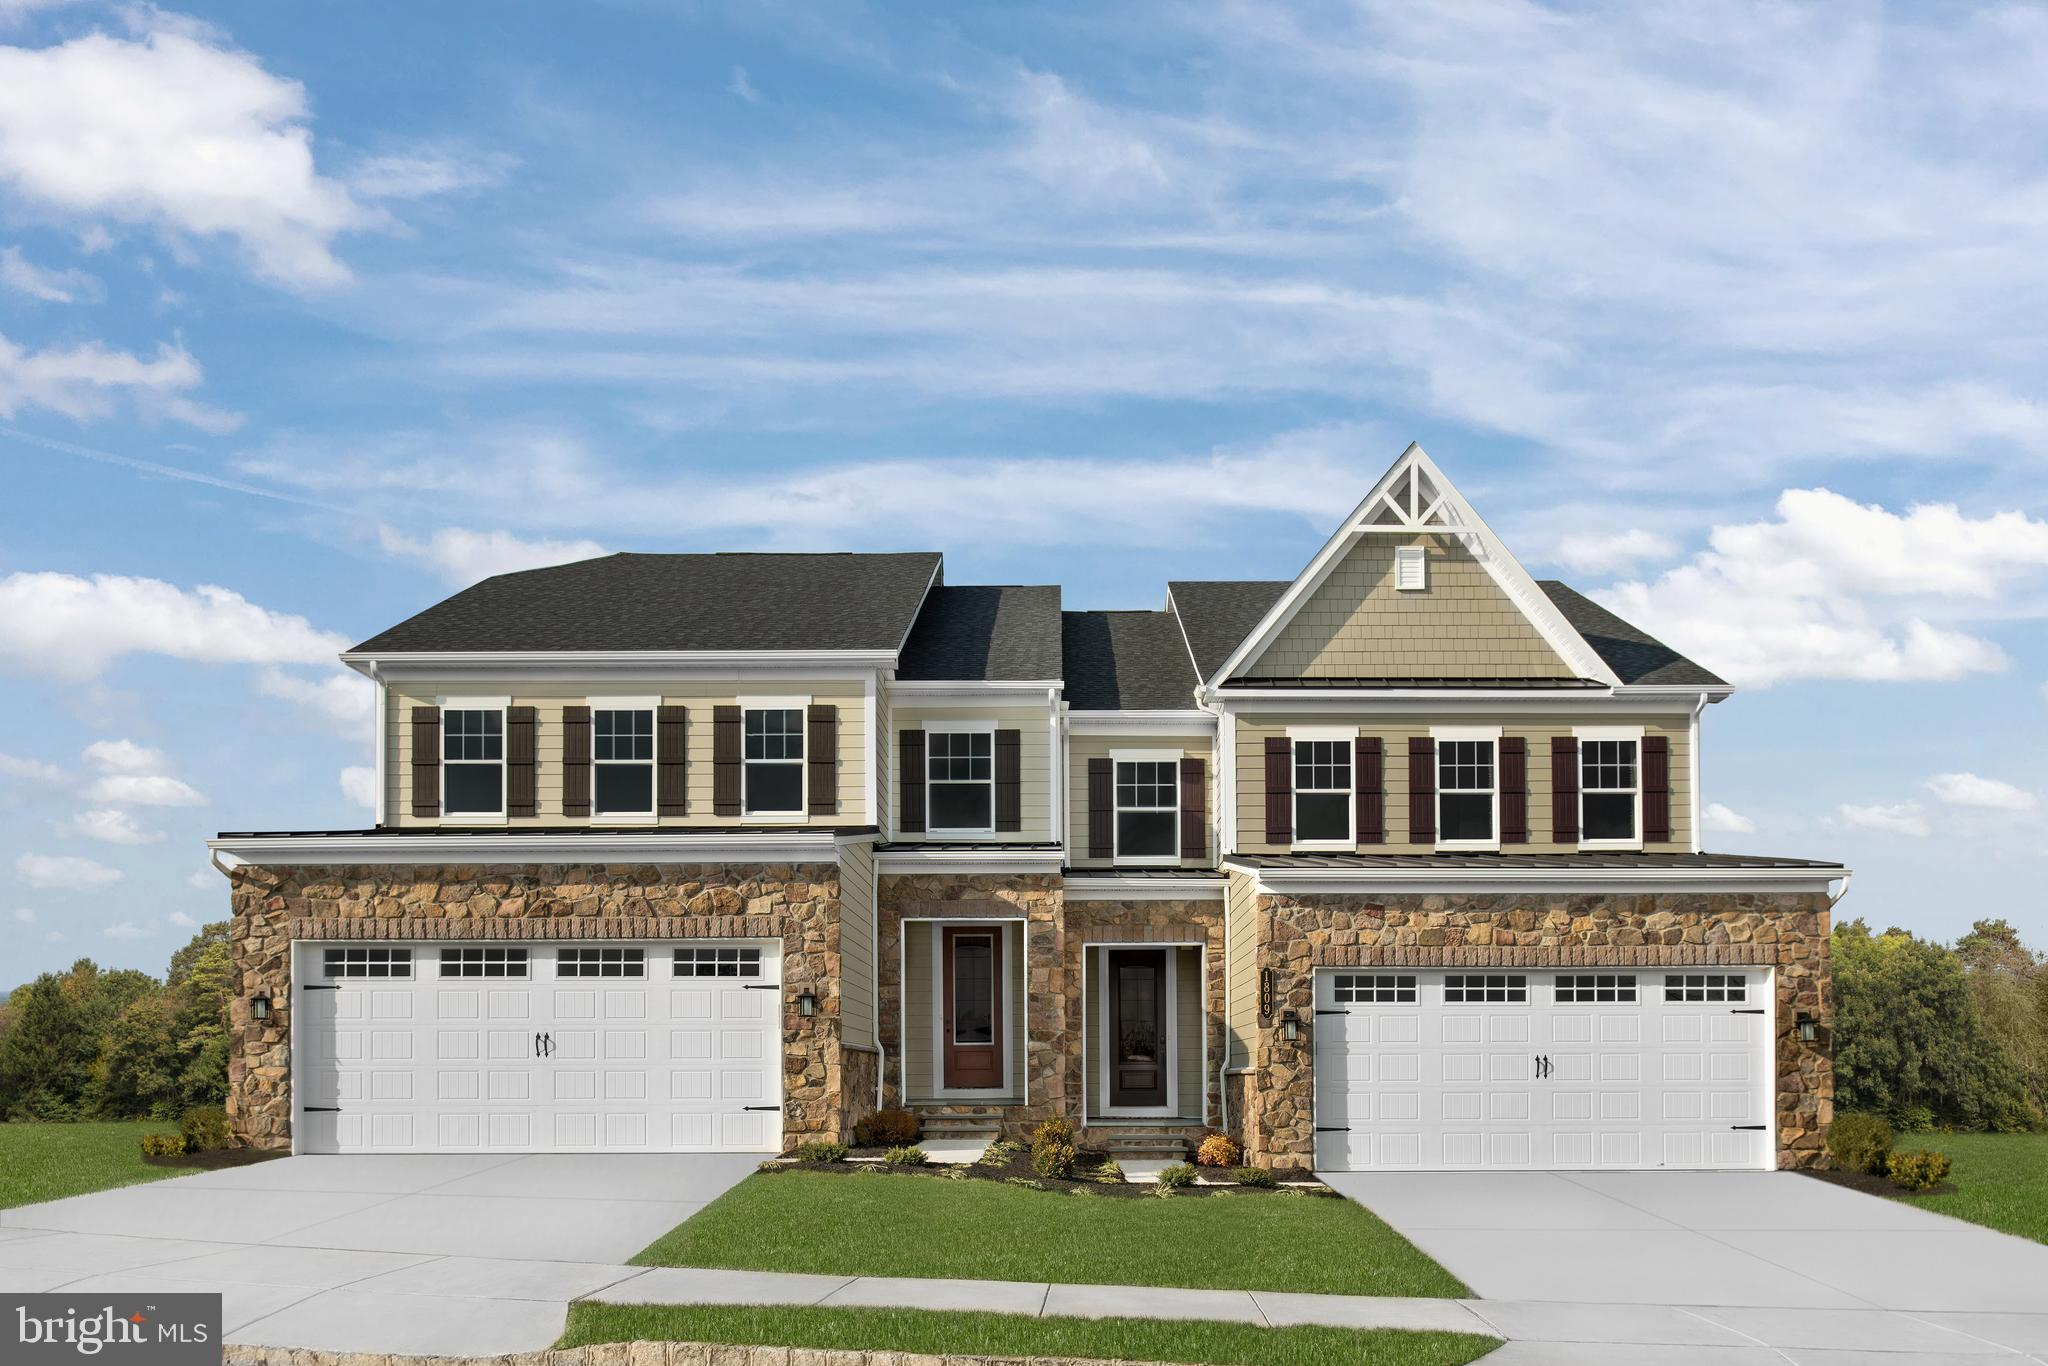 QUICK MOVE-IN  Haverford at Greystone by NVHomes! Luxury twin Homes in a spectacular estate setting near Rt. 100, 202, the 322 bypass, and West Chester Borough. The Haverford twin home offers luxury on every level. Just off the 2-car garage and family entry, versatile flex space can be used as an office, study or a 1st-floor bedroom with full bath. The gourmet kitchen and dining area with large island overlooks a great room, perfect for entertaining. Upstairs, sensational loft space leads to 2 bedrooms and a full bath, as well as your luxurious primary suite. In here, dual walk-in closets and double vanity bath and seated shower provide incomparable comfort. Finish the expansive basement for more living space or a guest suite. The Haverford at Greystone has it all.  Other floorplans and homesites are available. Photos are representative.